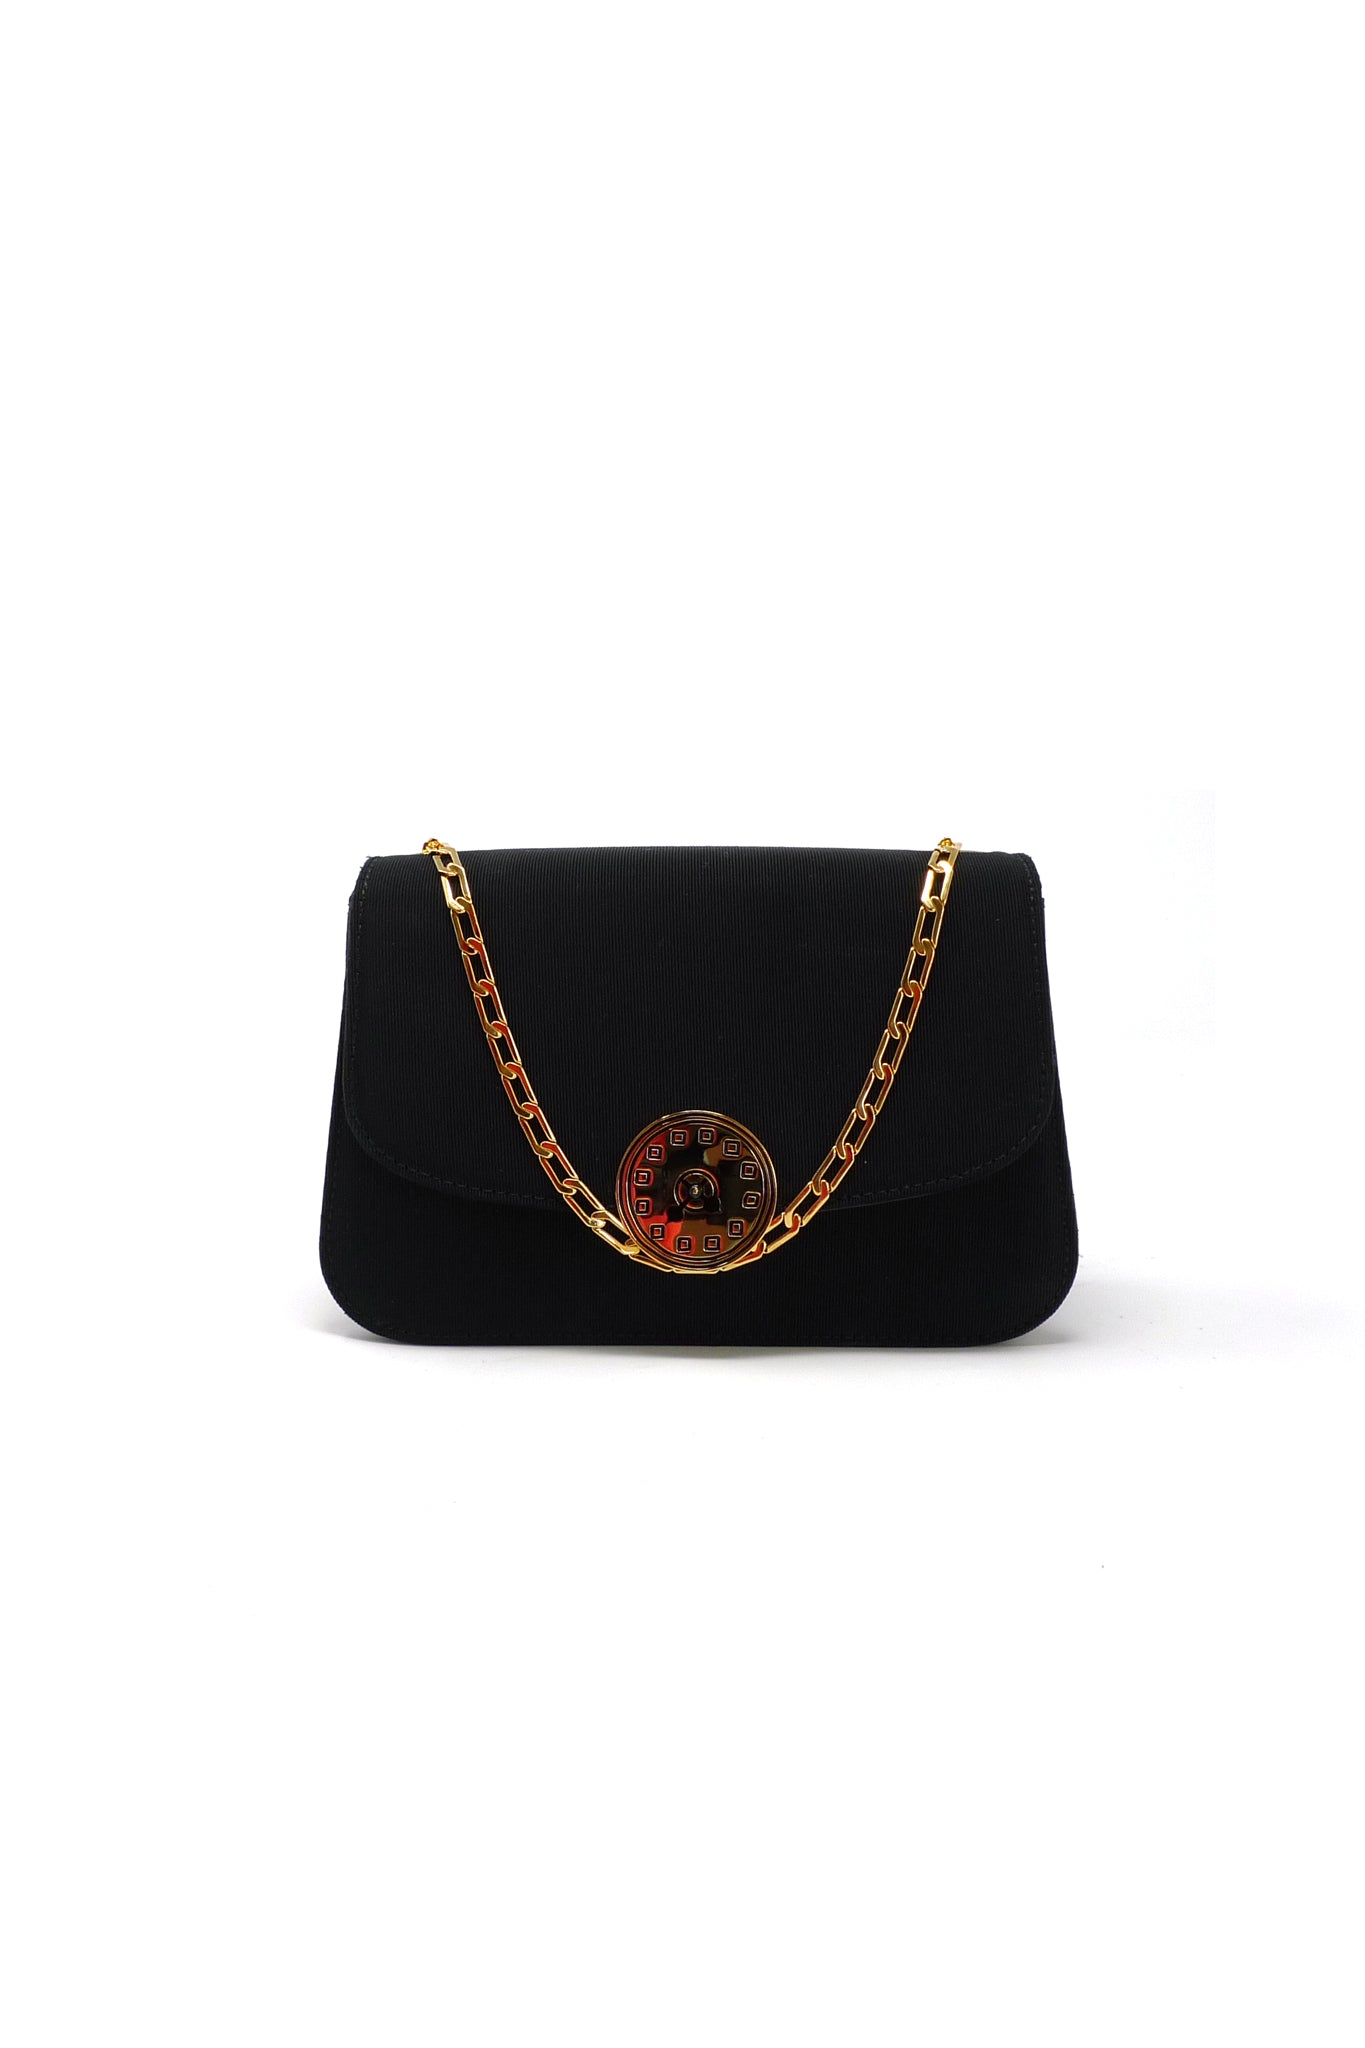 Sabi Shoulder Bag in Black Grosgrain with Gold Etched Clock Detail by Ryan Mettz